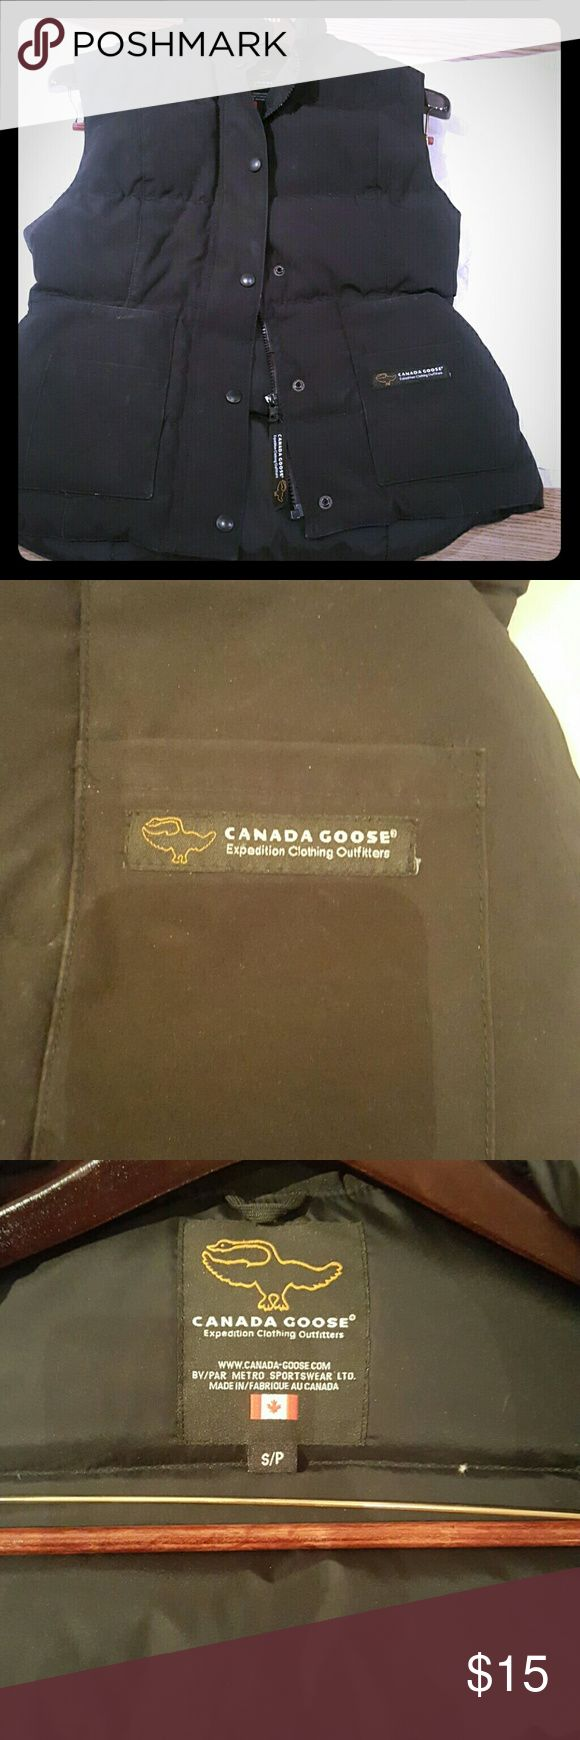 Authentic Canada Goose down vest Pre-owned discounted to sell as is, chalk like mark on front and bag, but still good condition and very warm! Canada Goose Jackets & Coats Puffers